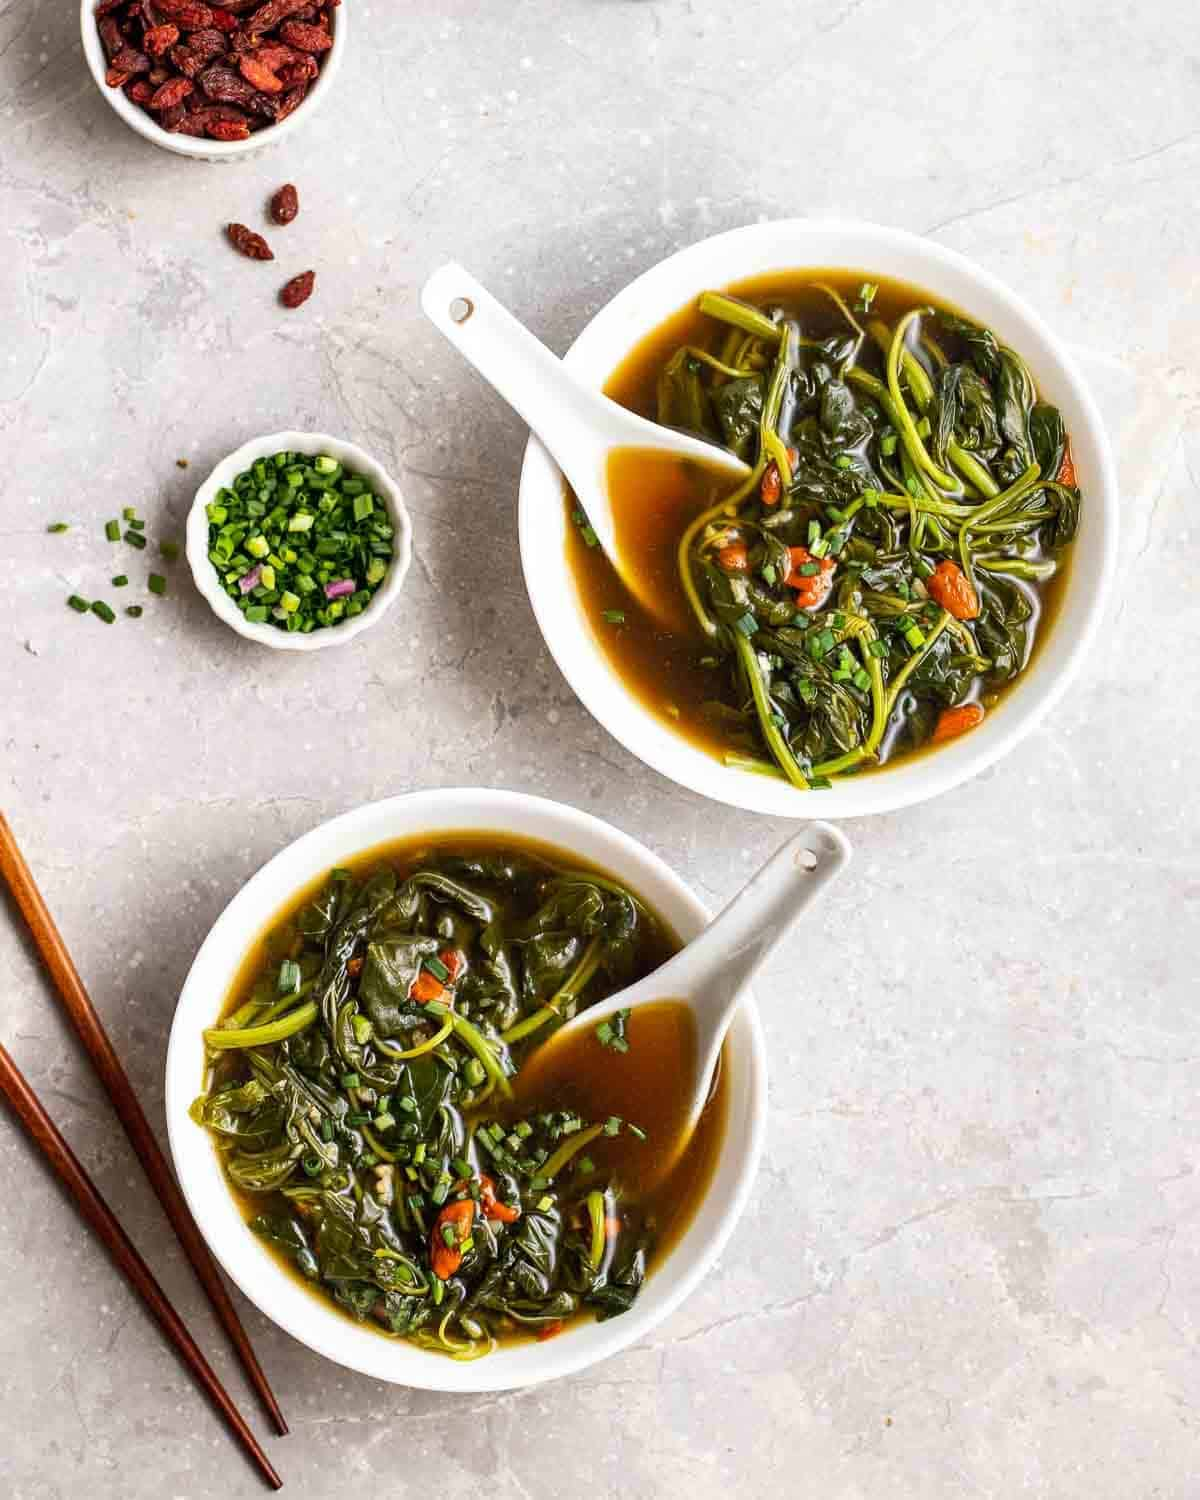 2 bowls of spinach soup with spoons. There are chopsticks, goji berries and scallions beside.